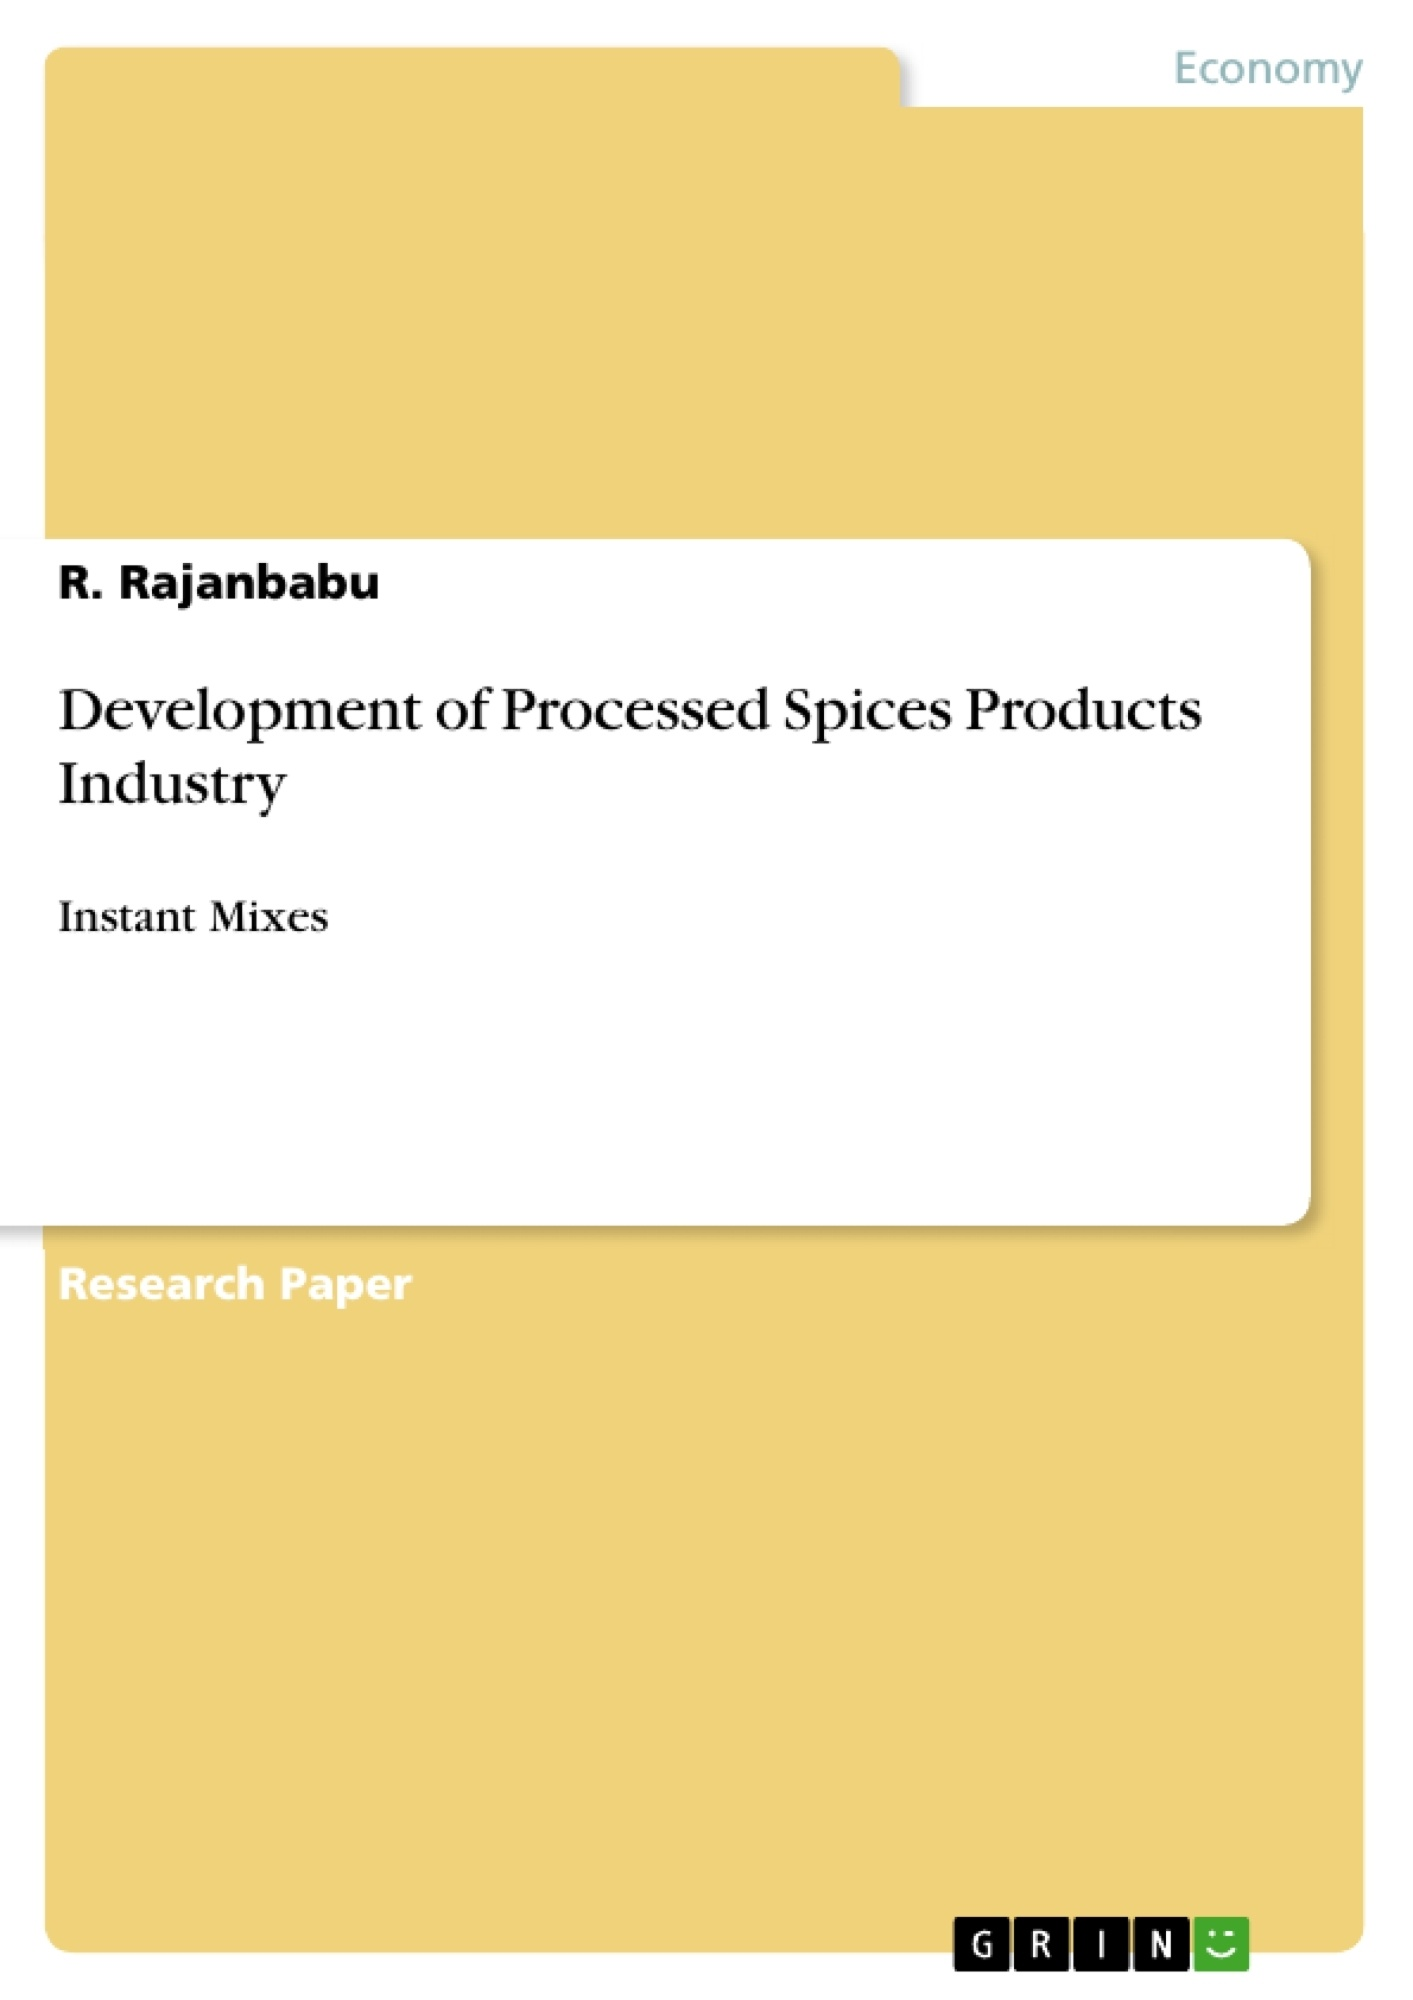 Title: Development of Processed Spices Products Industry